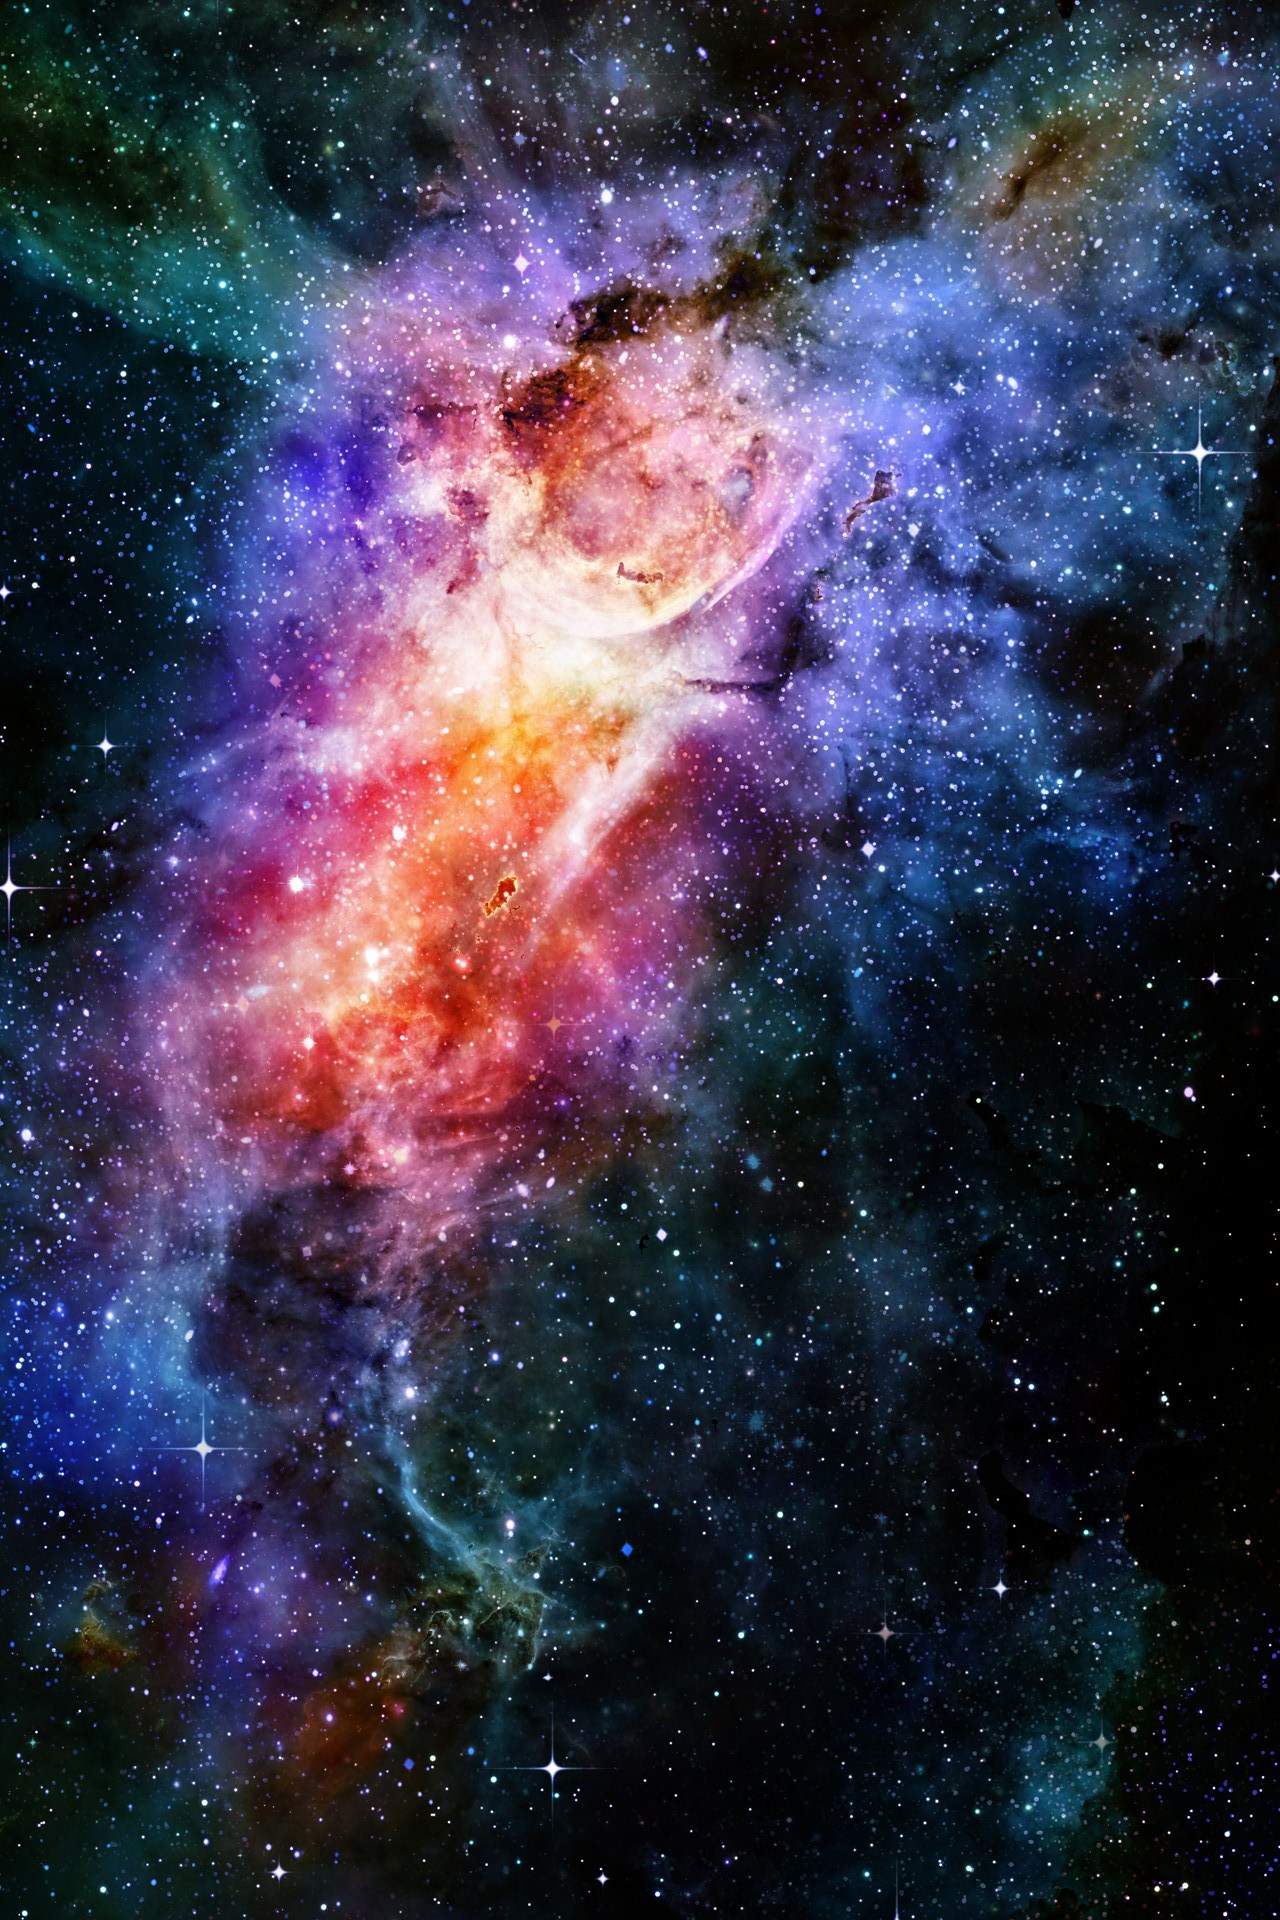 Galaxy iphone wallpaper hd wallpapersafari for Wallpaper home screen tumblr